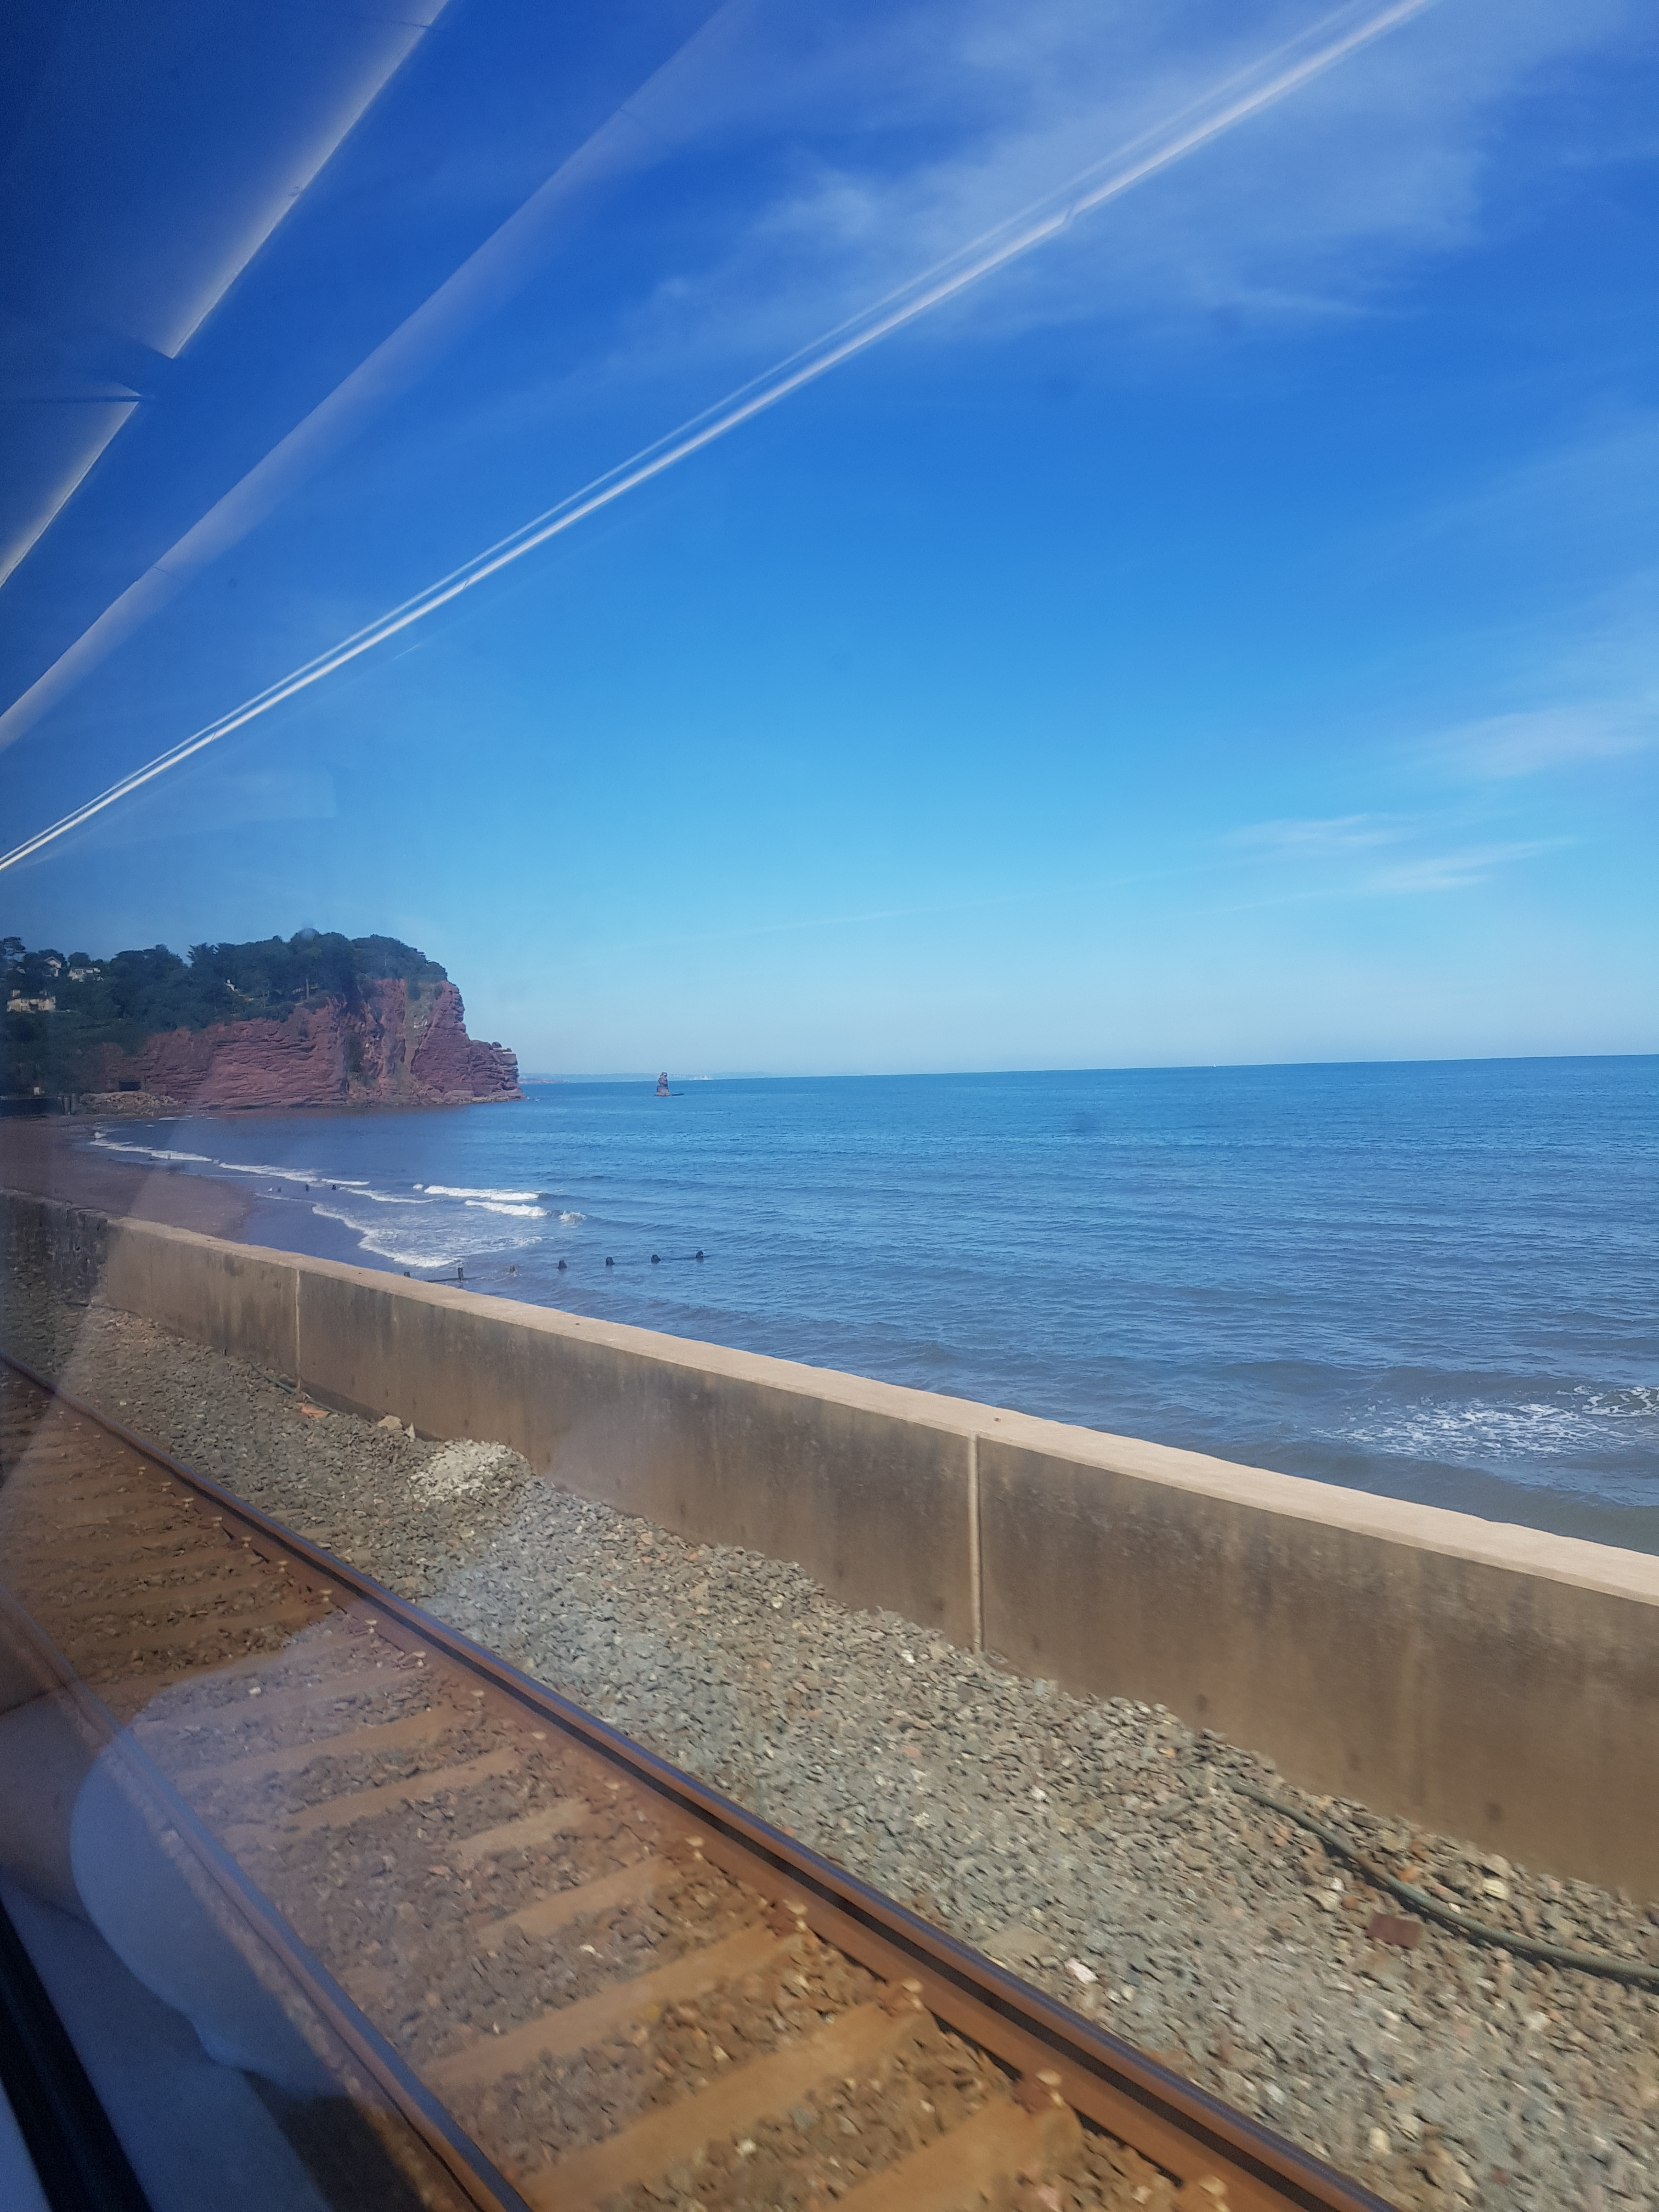 View of the English channel from a train along the south coast of England